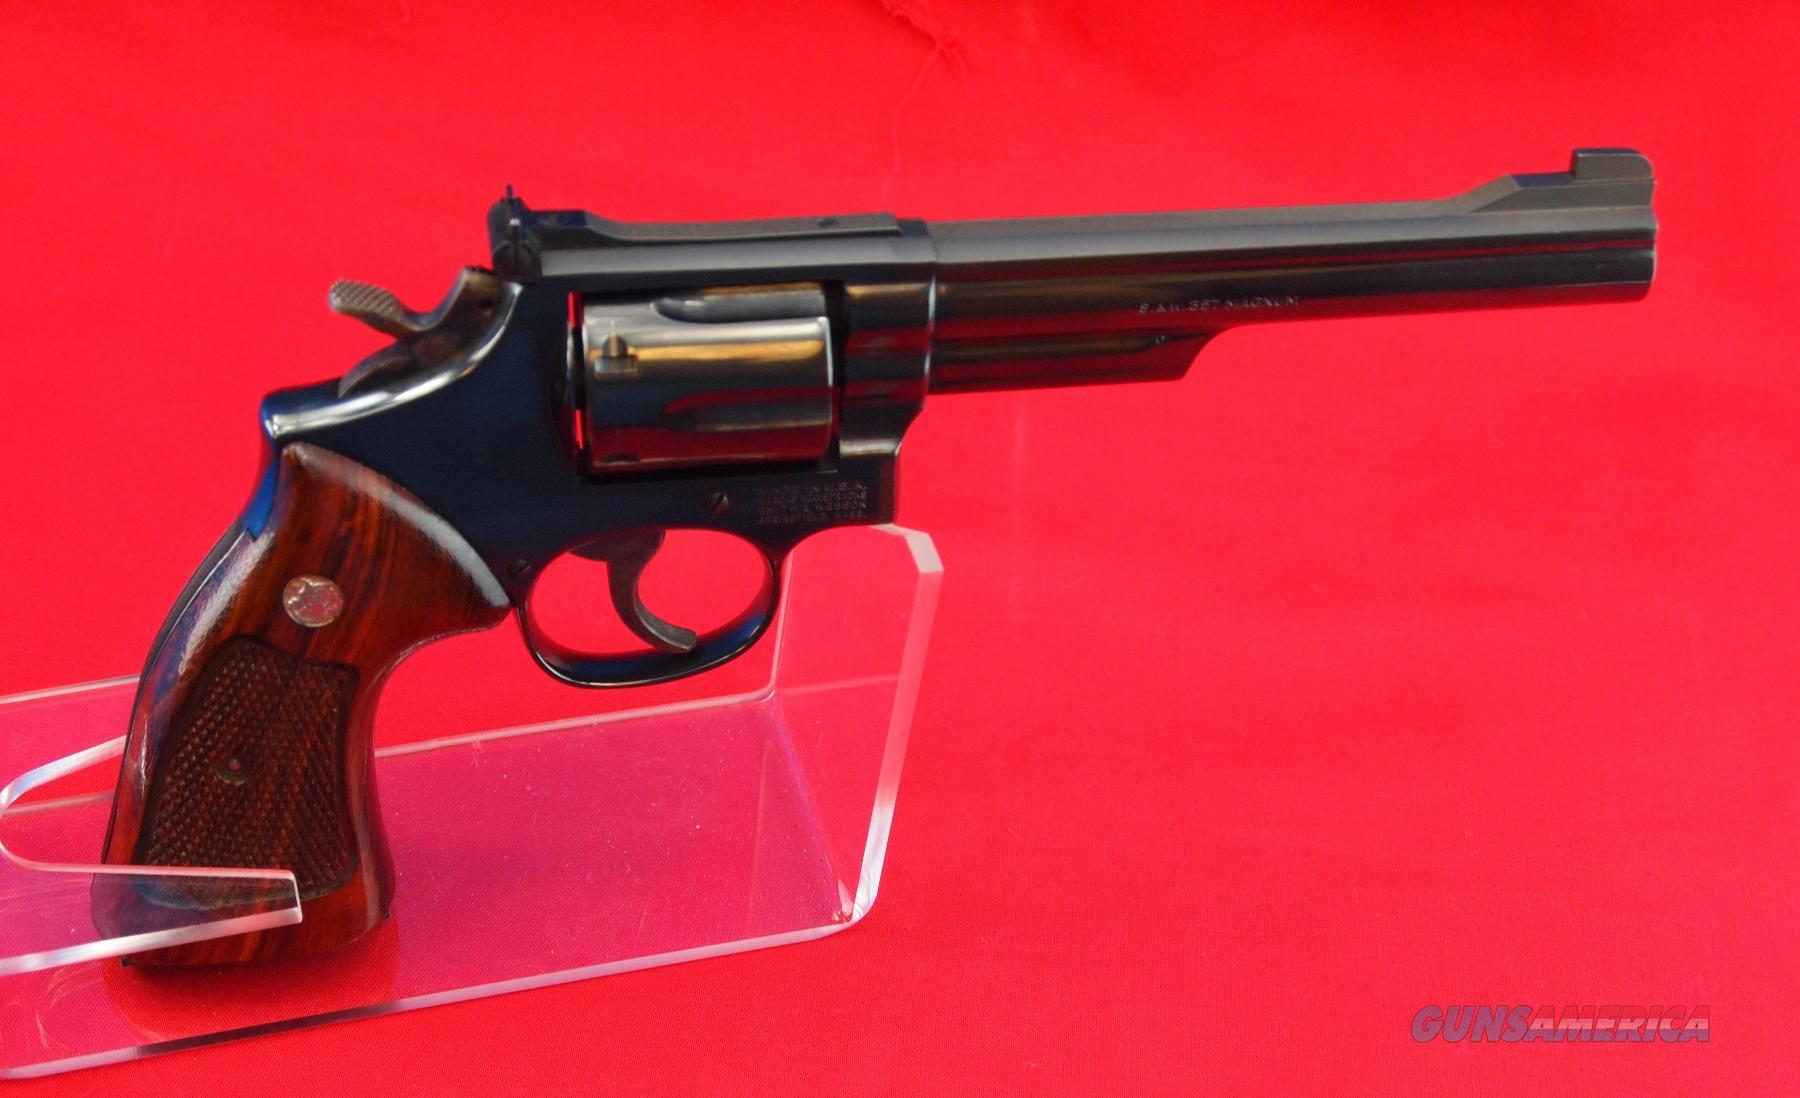 Smith and Wesson DA 19-5 .357 Magnum  Guns > Pistols > Smith & Wesson Revolvers > Full Frame Revolver